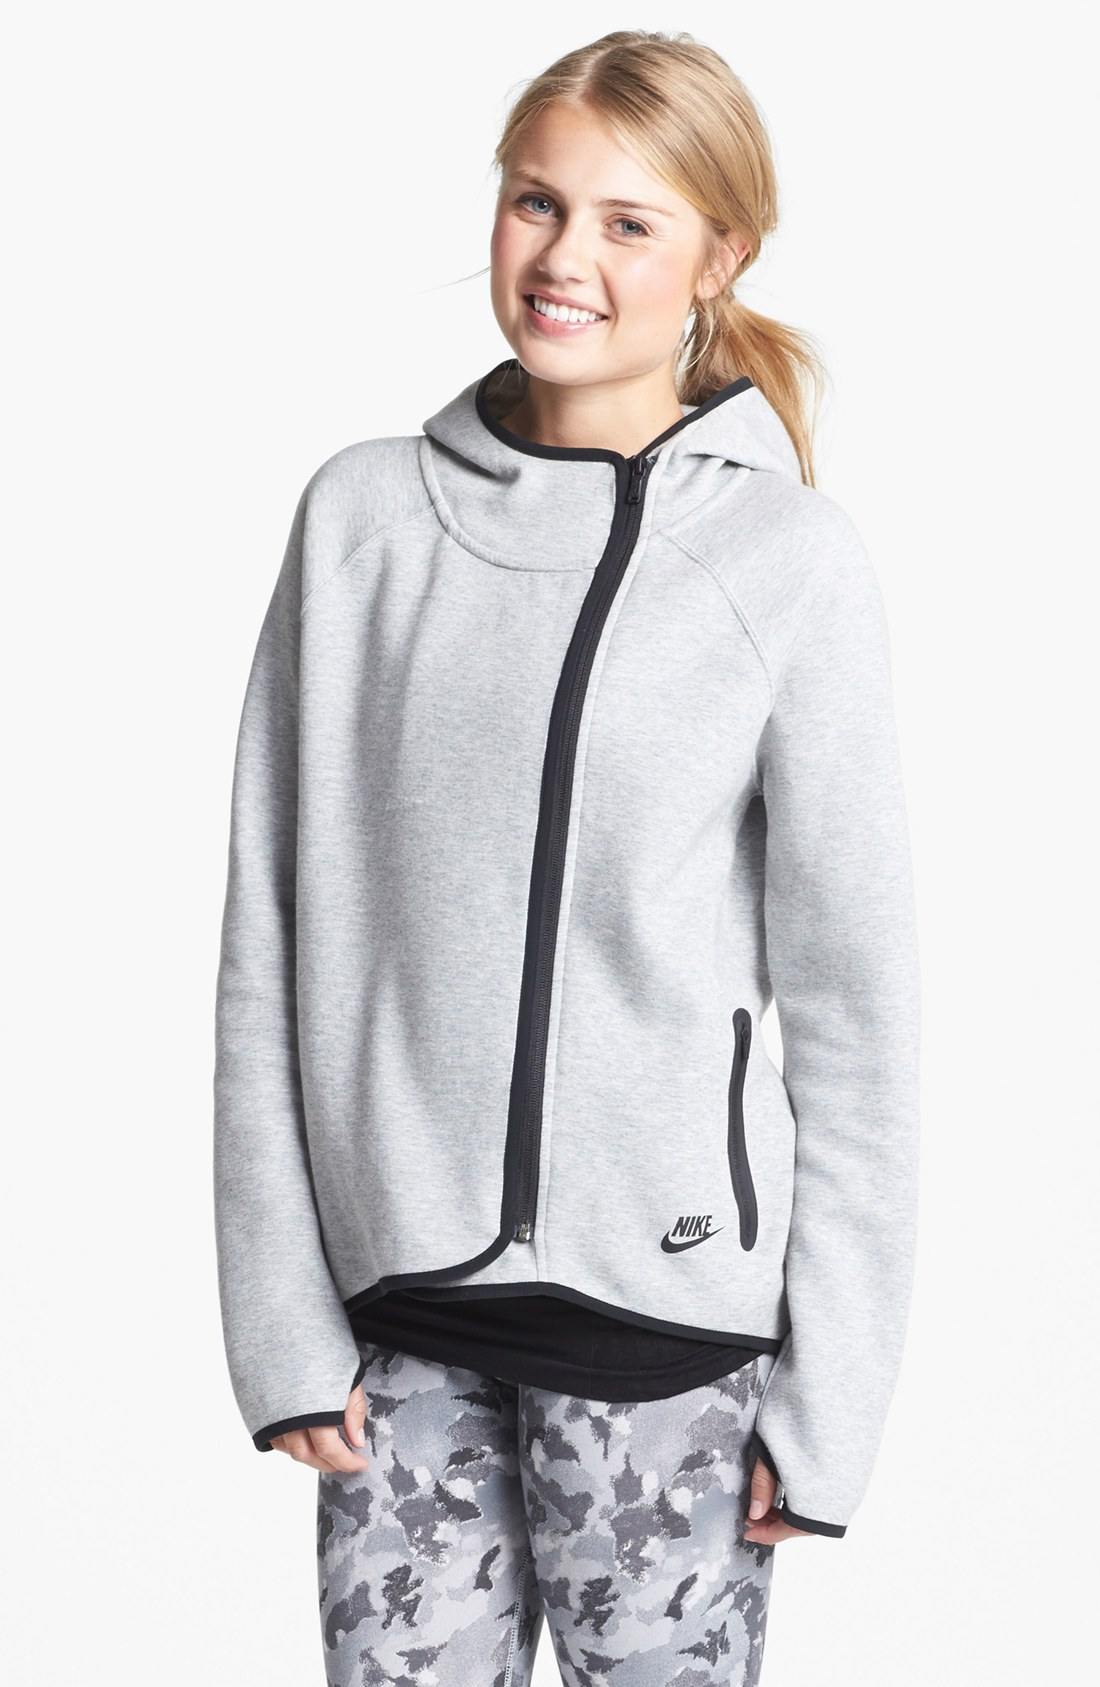 Nike jacket gray and black - Gallery